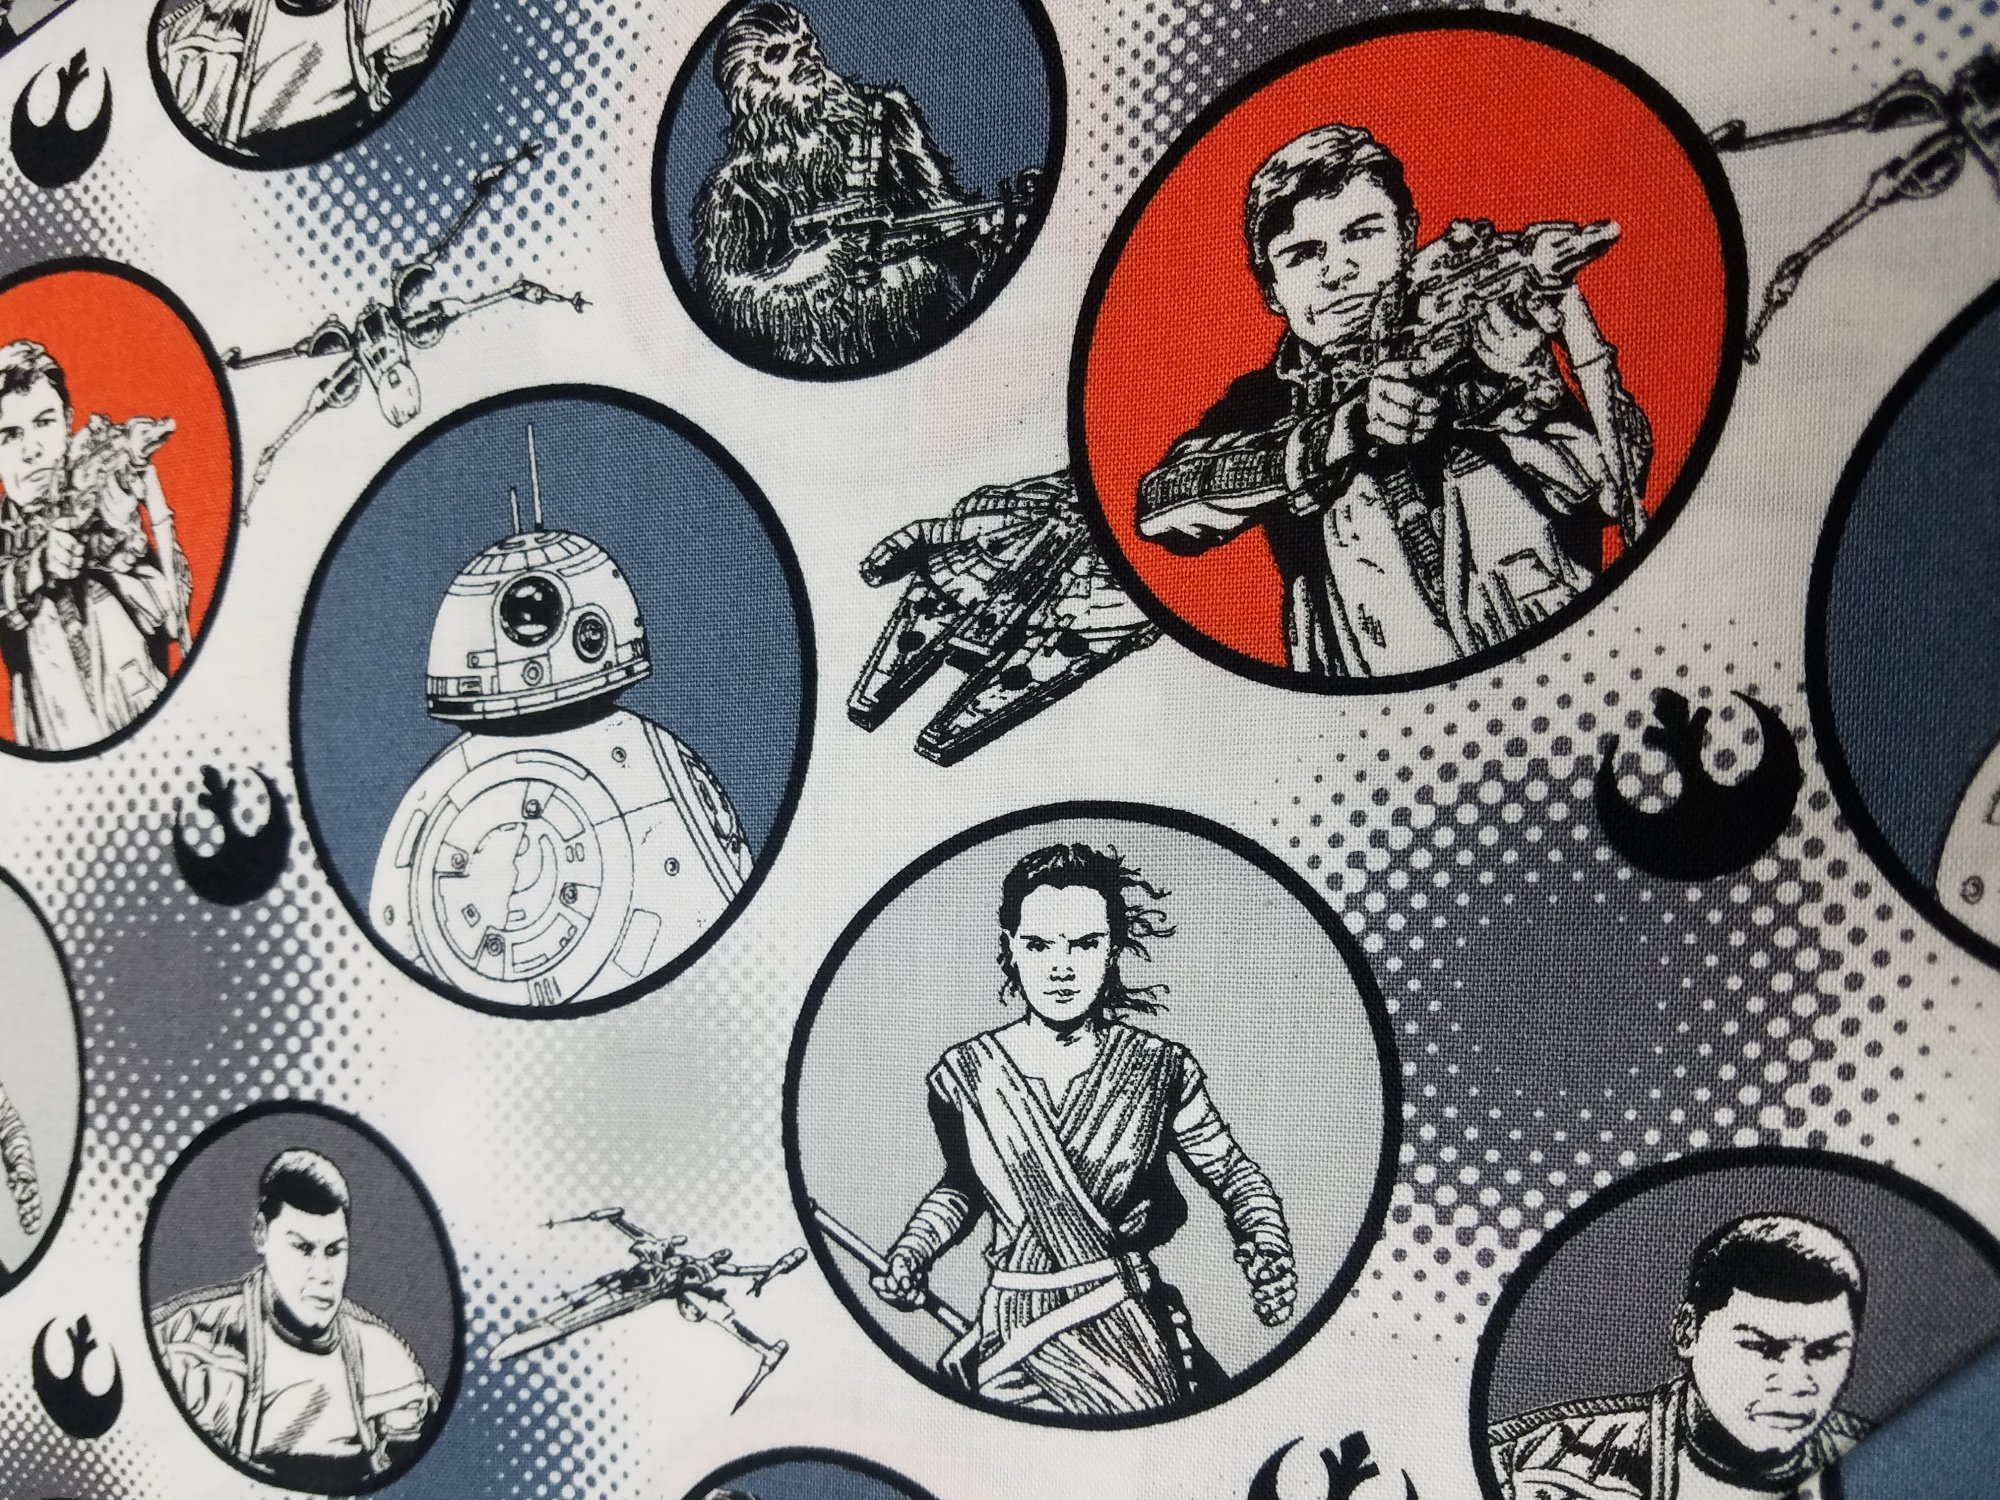 Stars Wars The Force Awakens by Camelot Fabrics (7360105-03)